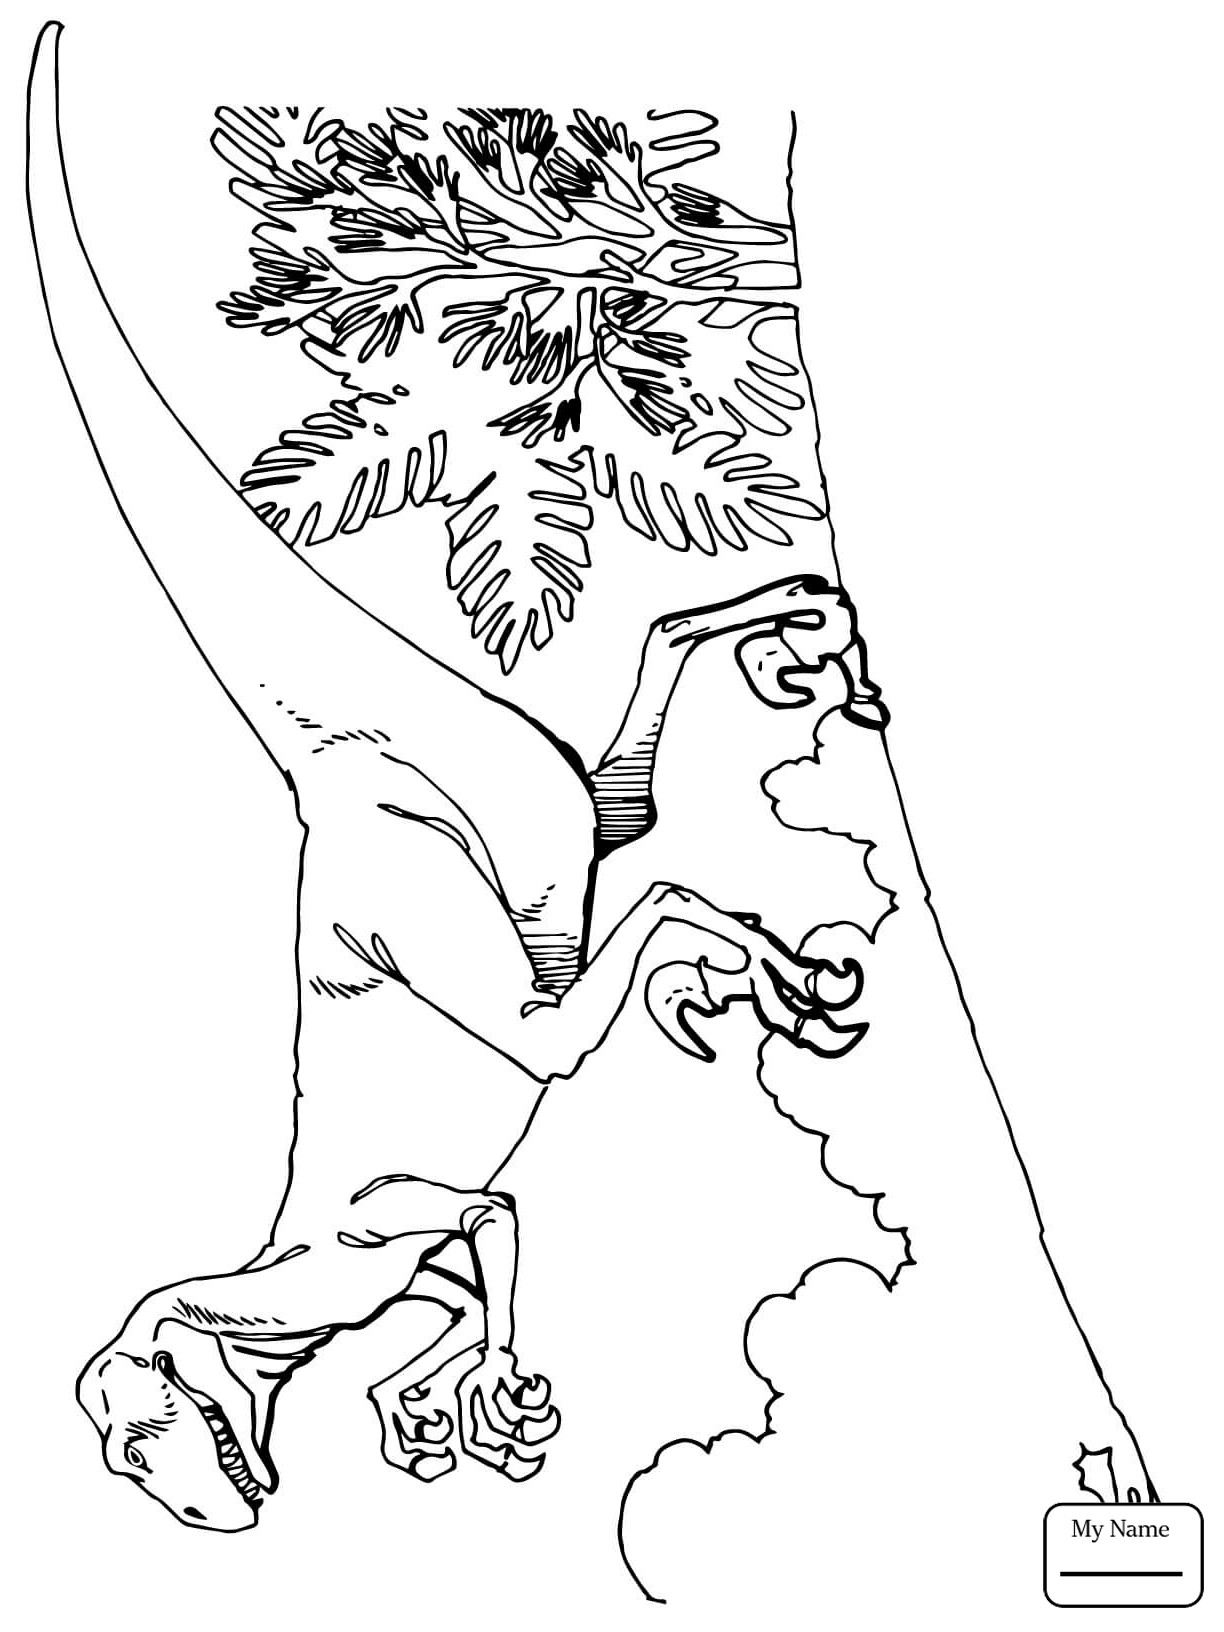 ceratosaurus coloring pages ceratosaurus coloring pages at getdrawings free download coloring ceratosaurus pages 1 1